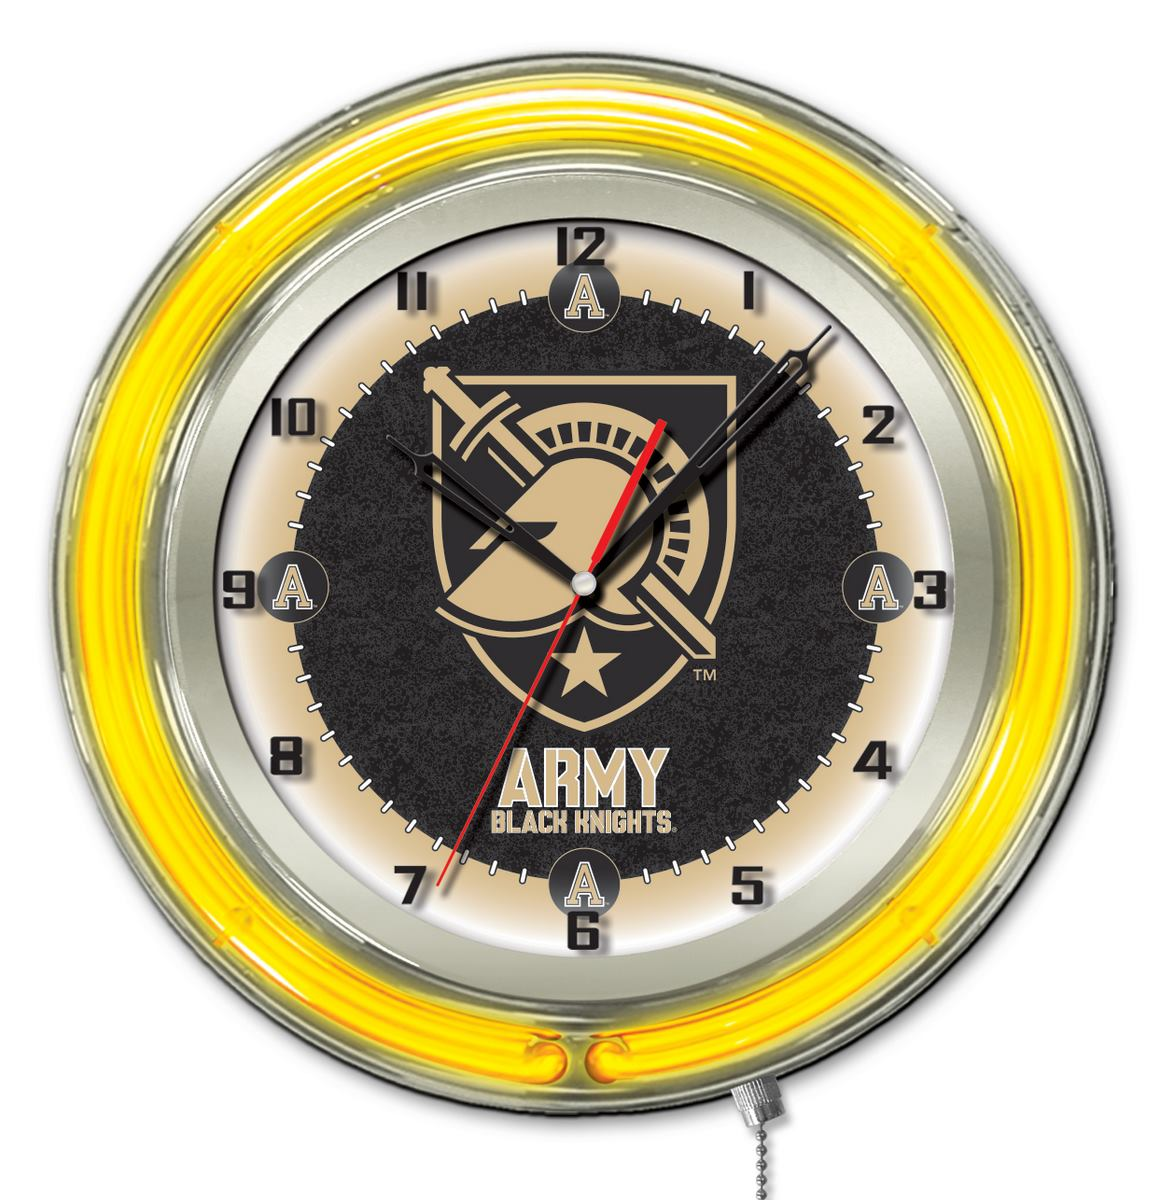 US Military Academy ARMY Double Neon Ring 19quot dia Logo  : Clk19USMilA from zerbee.com size 1174 x 1200 jpeg 173kB